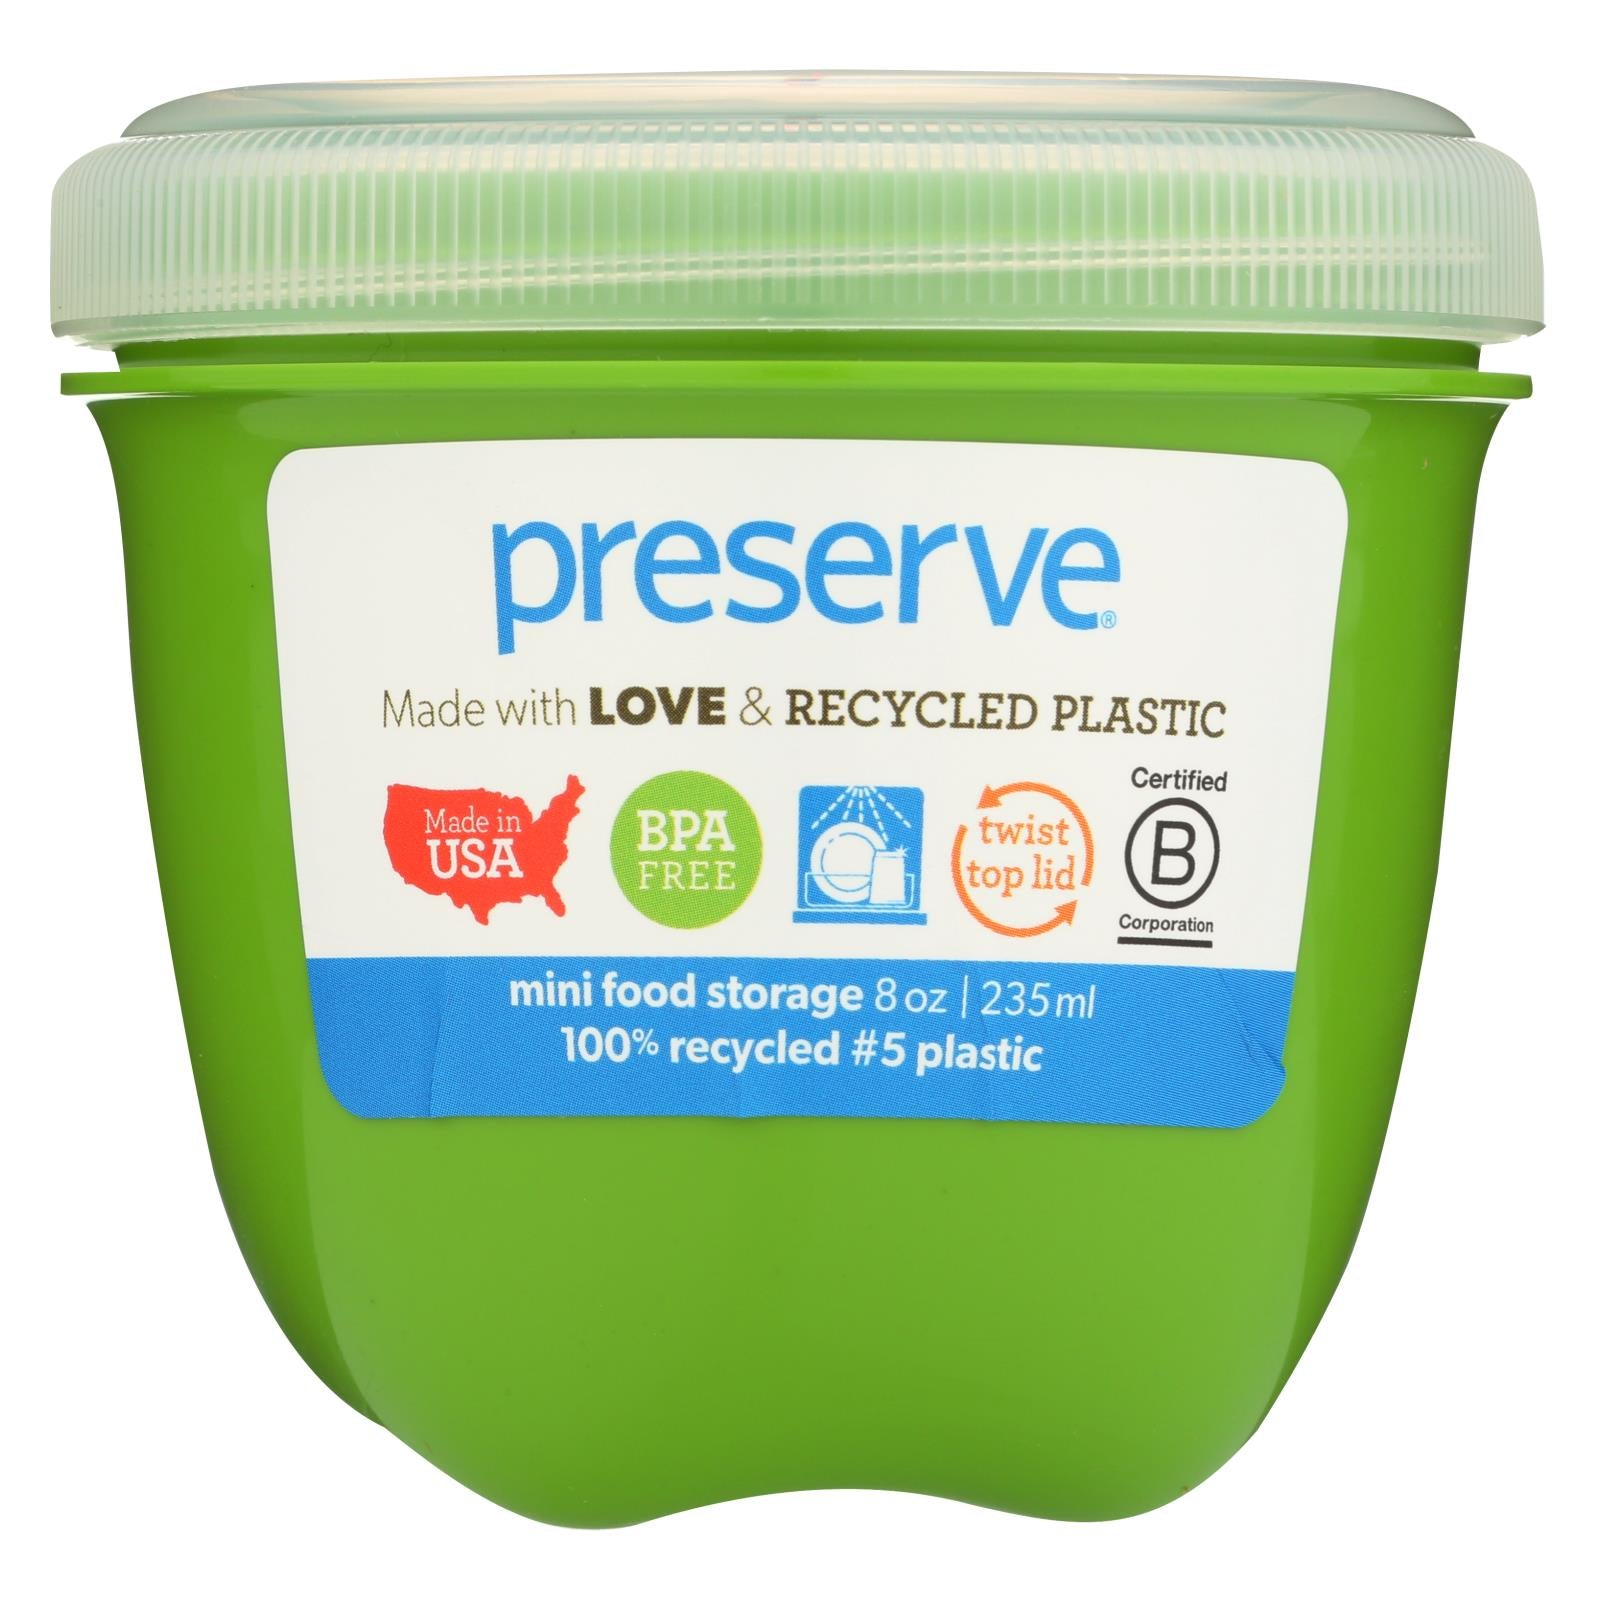 Buy Preserve Mini Food Storage Container - Apple Green - 8 oz - Reusable Containers from Veroeco.com